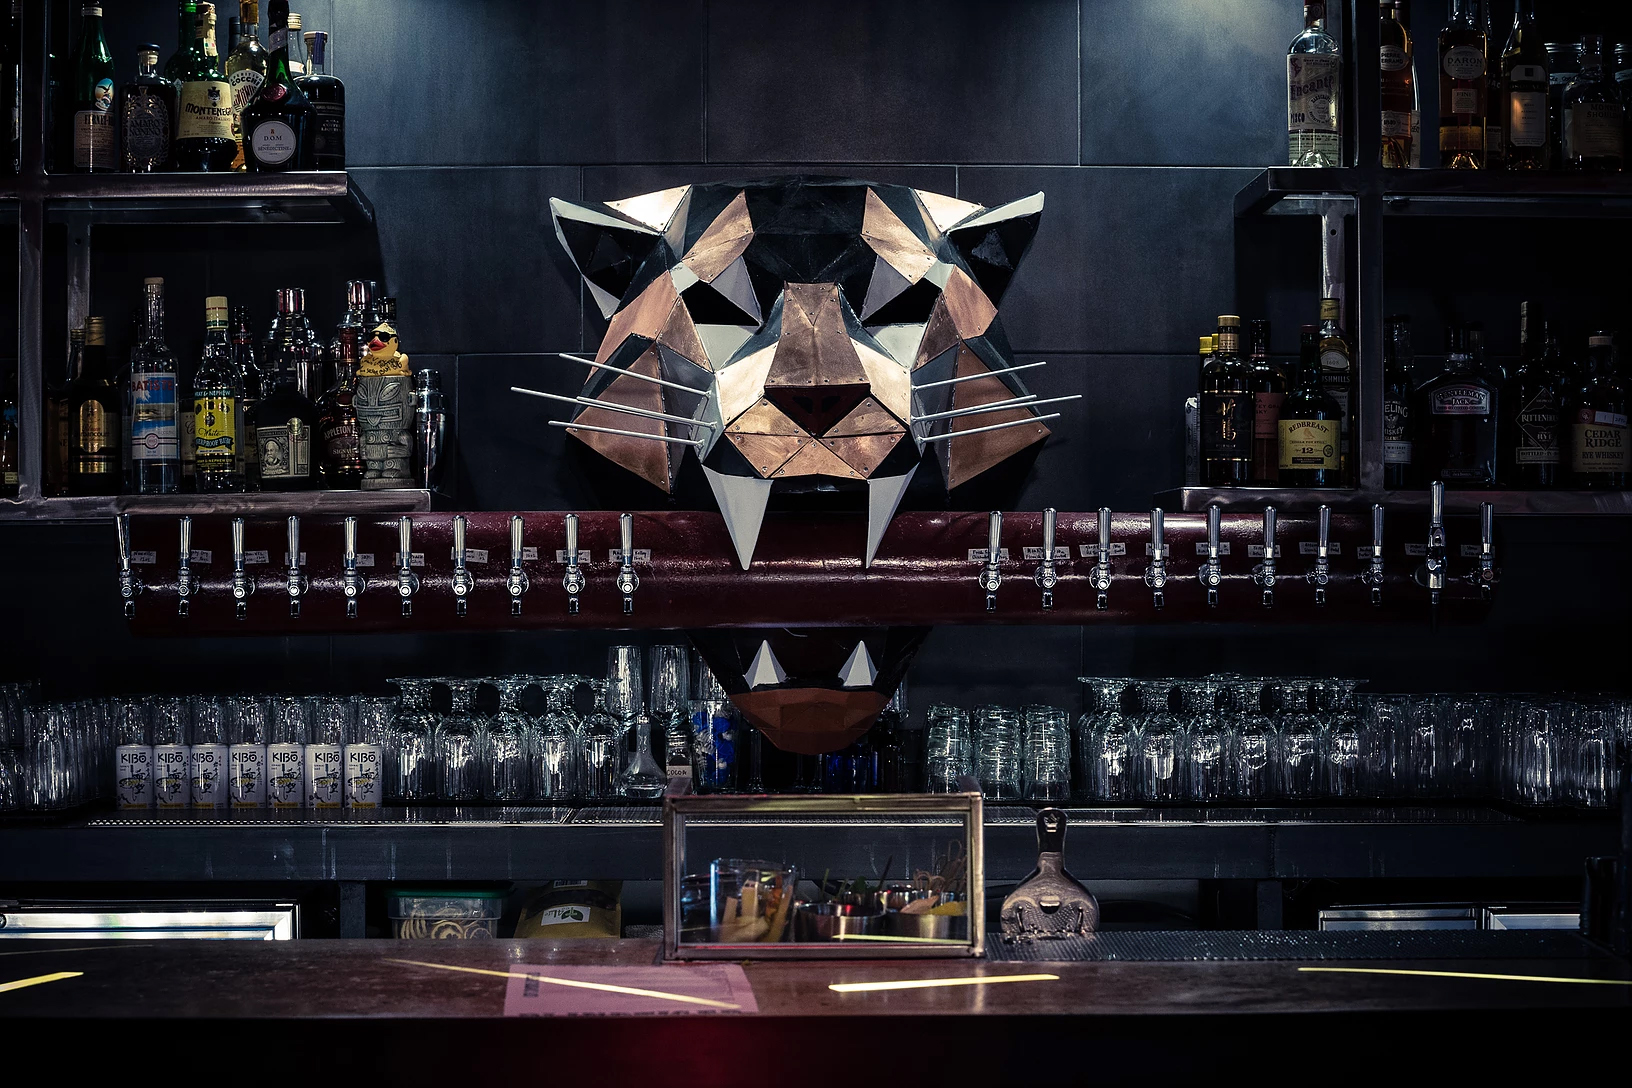 Photo of a sculpture of a metal tiger head mounted above the bar at Blind Tiger in Oakland